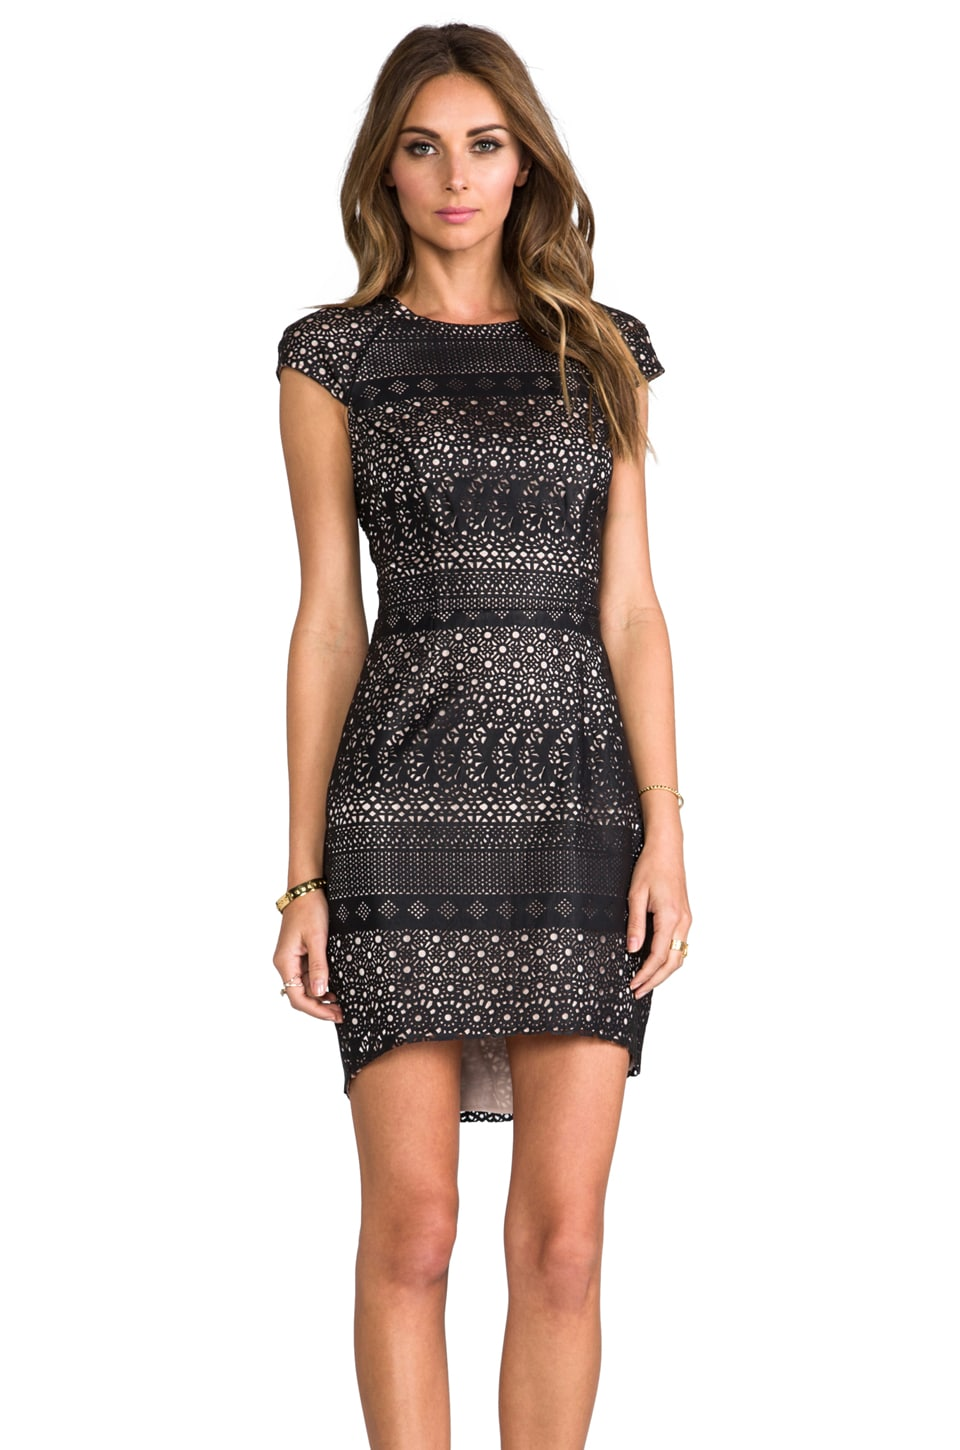 Dolce Vita Wallis Laser Cut Faux Leather Dress in Black